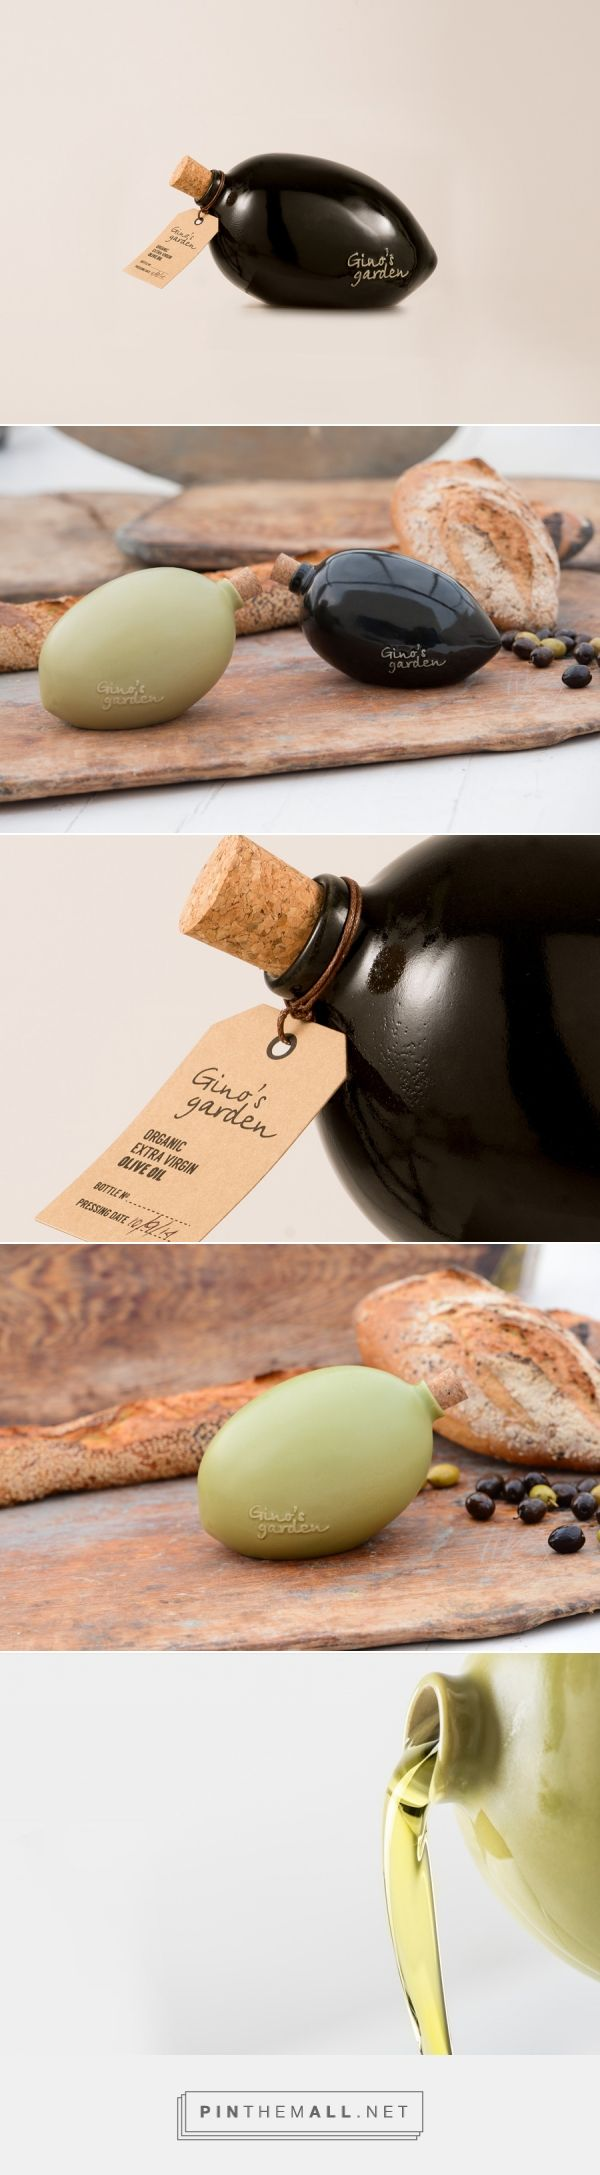 MARIOS KARYSTIOS - OLIVE BY GINO'S GARDEN / Gino's garden organic olive oil from…